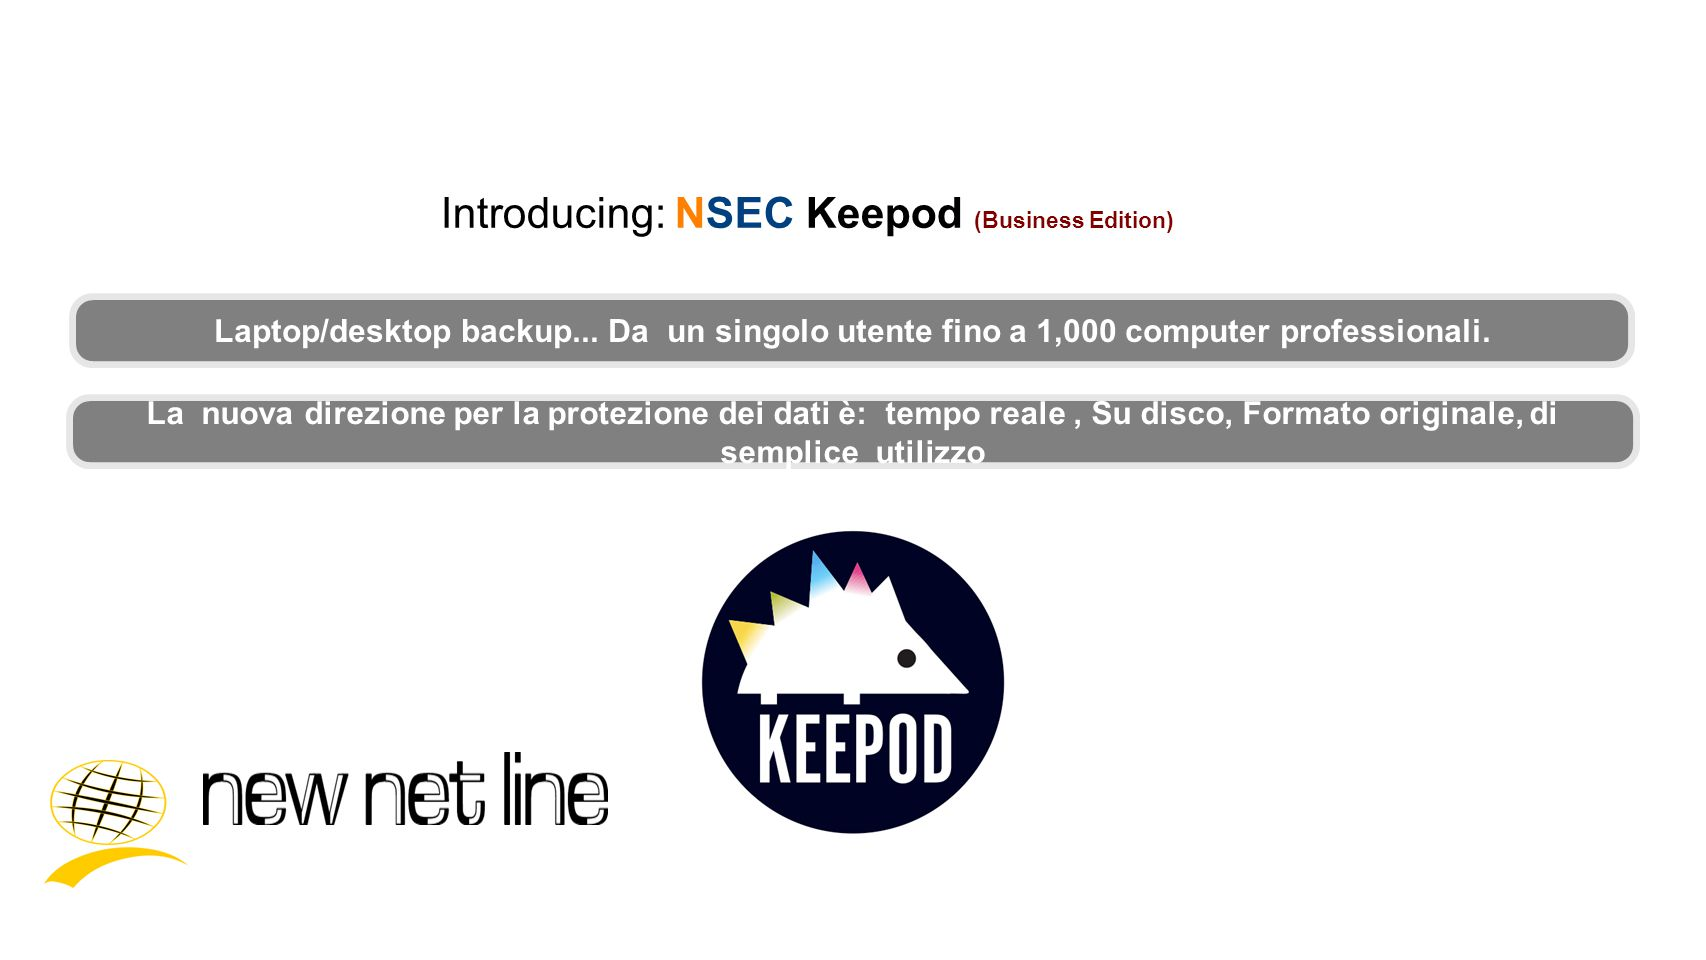 Introducing: NSEC Keepod (Business Edition)